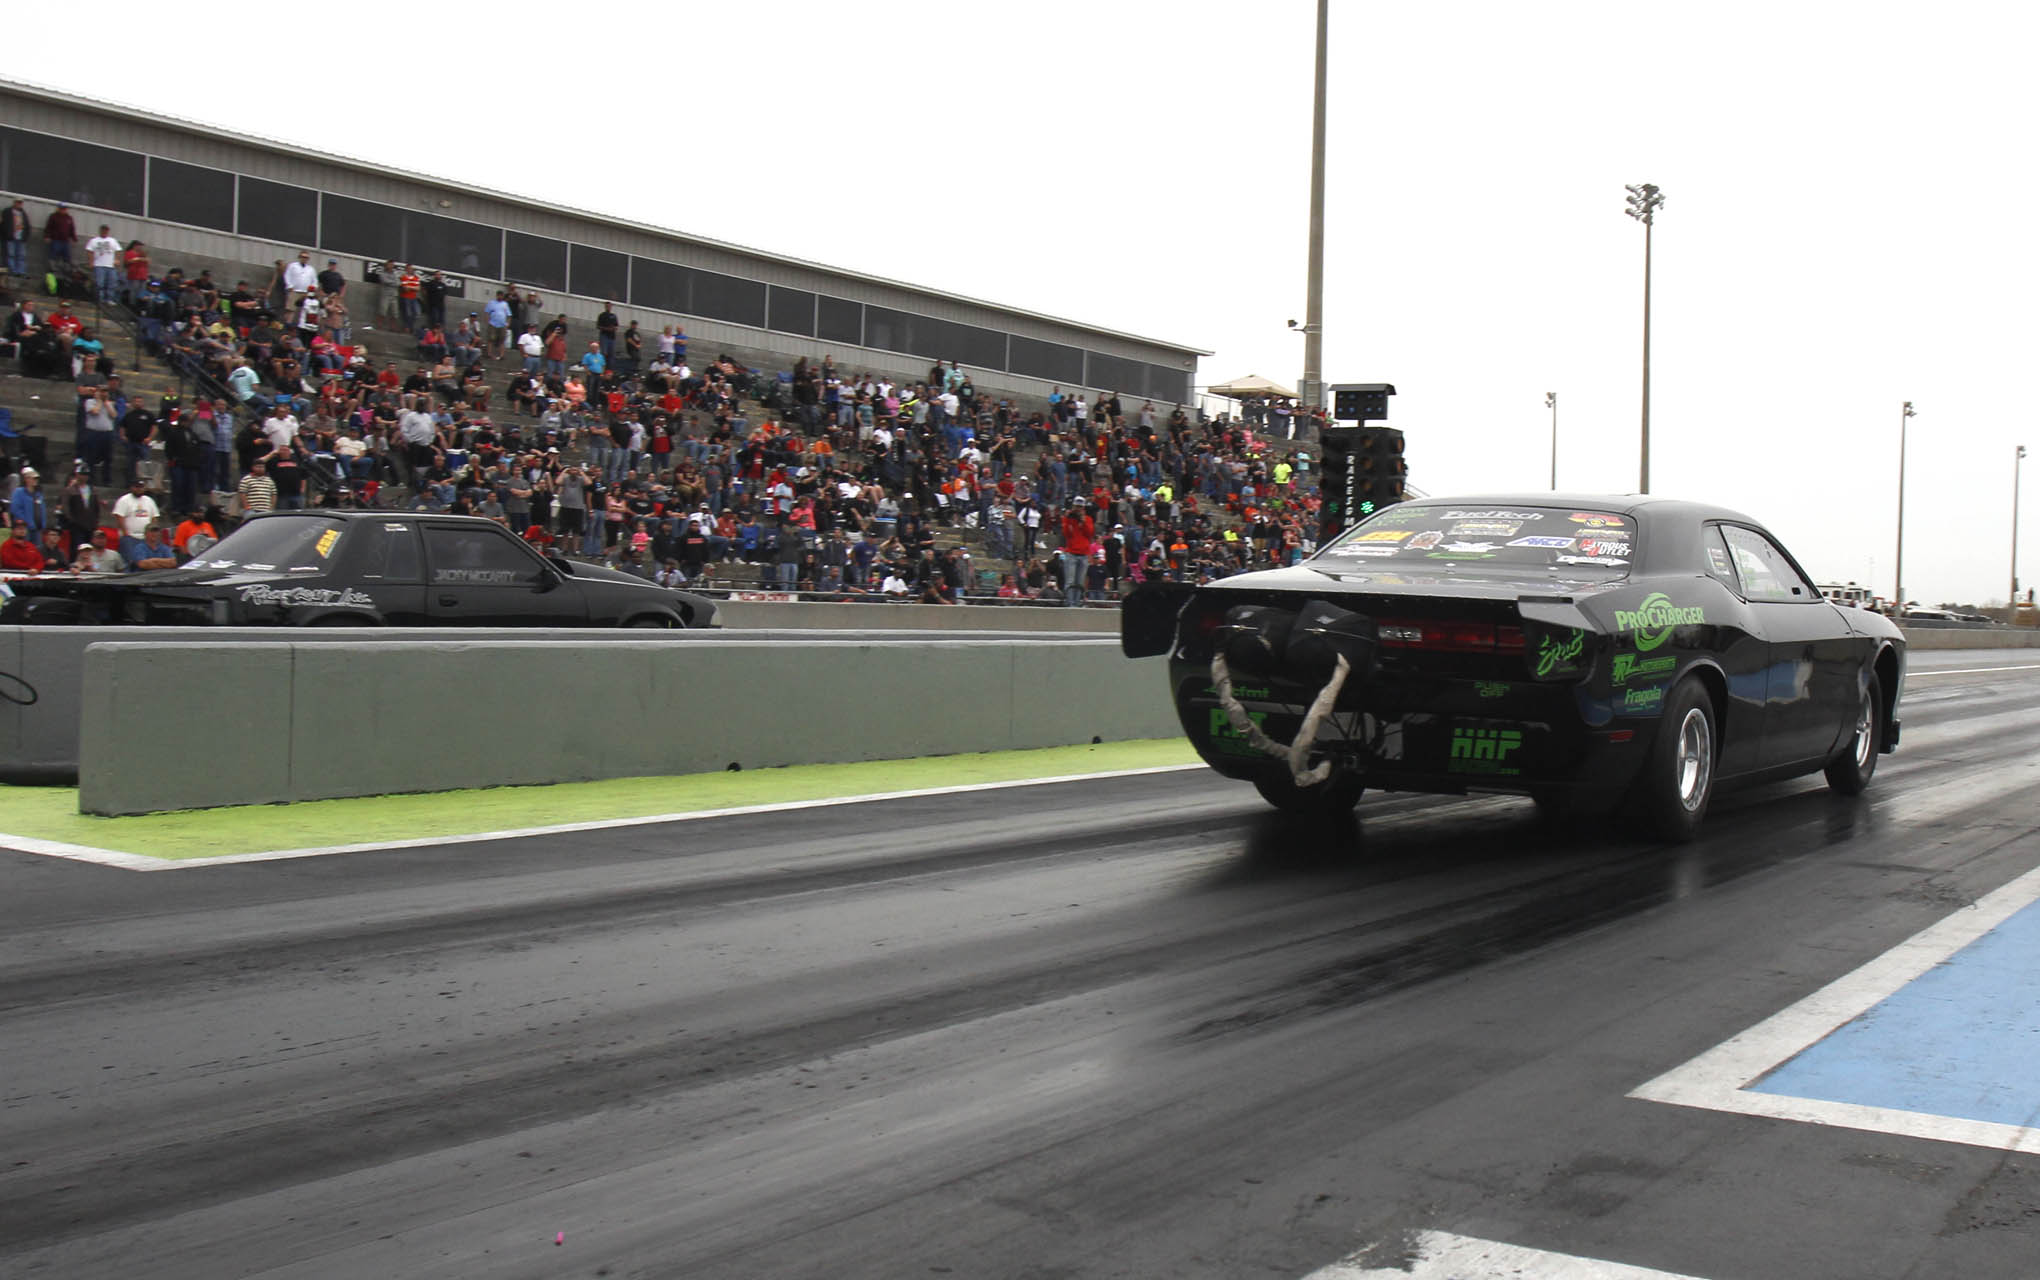 Rob Goss had the car to beat in X275. His 2009 Challenger posted a record e.t. in qualifying and dominated the field up to the last round of eliminations, where he lost to Jacky McCarty, destroying the engine in the process.